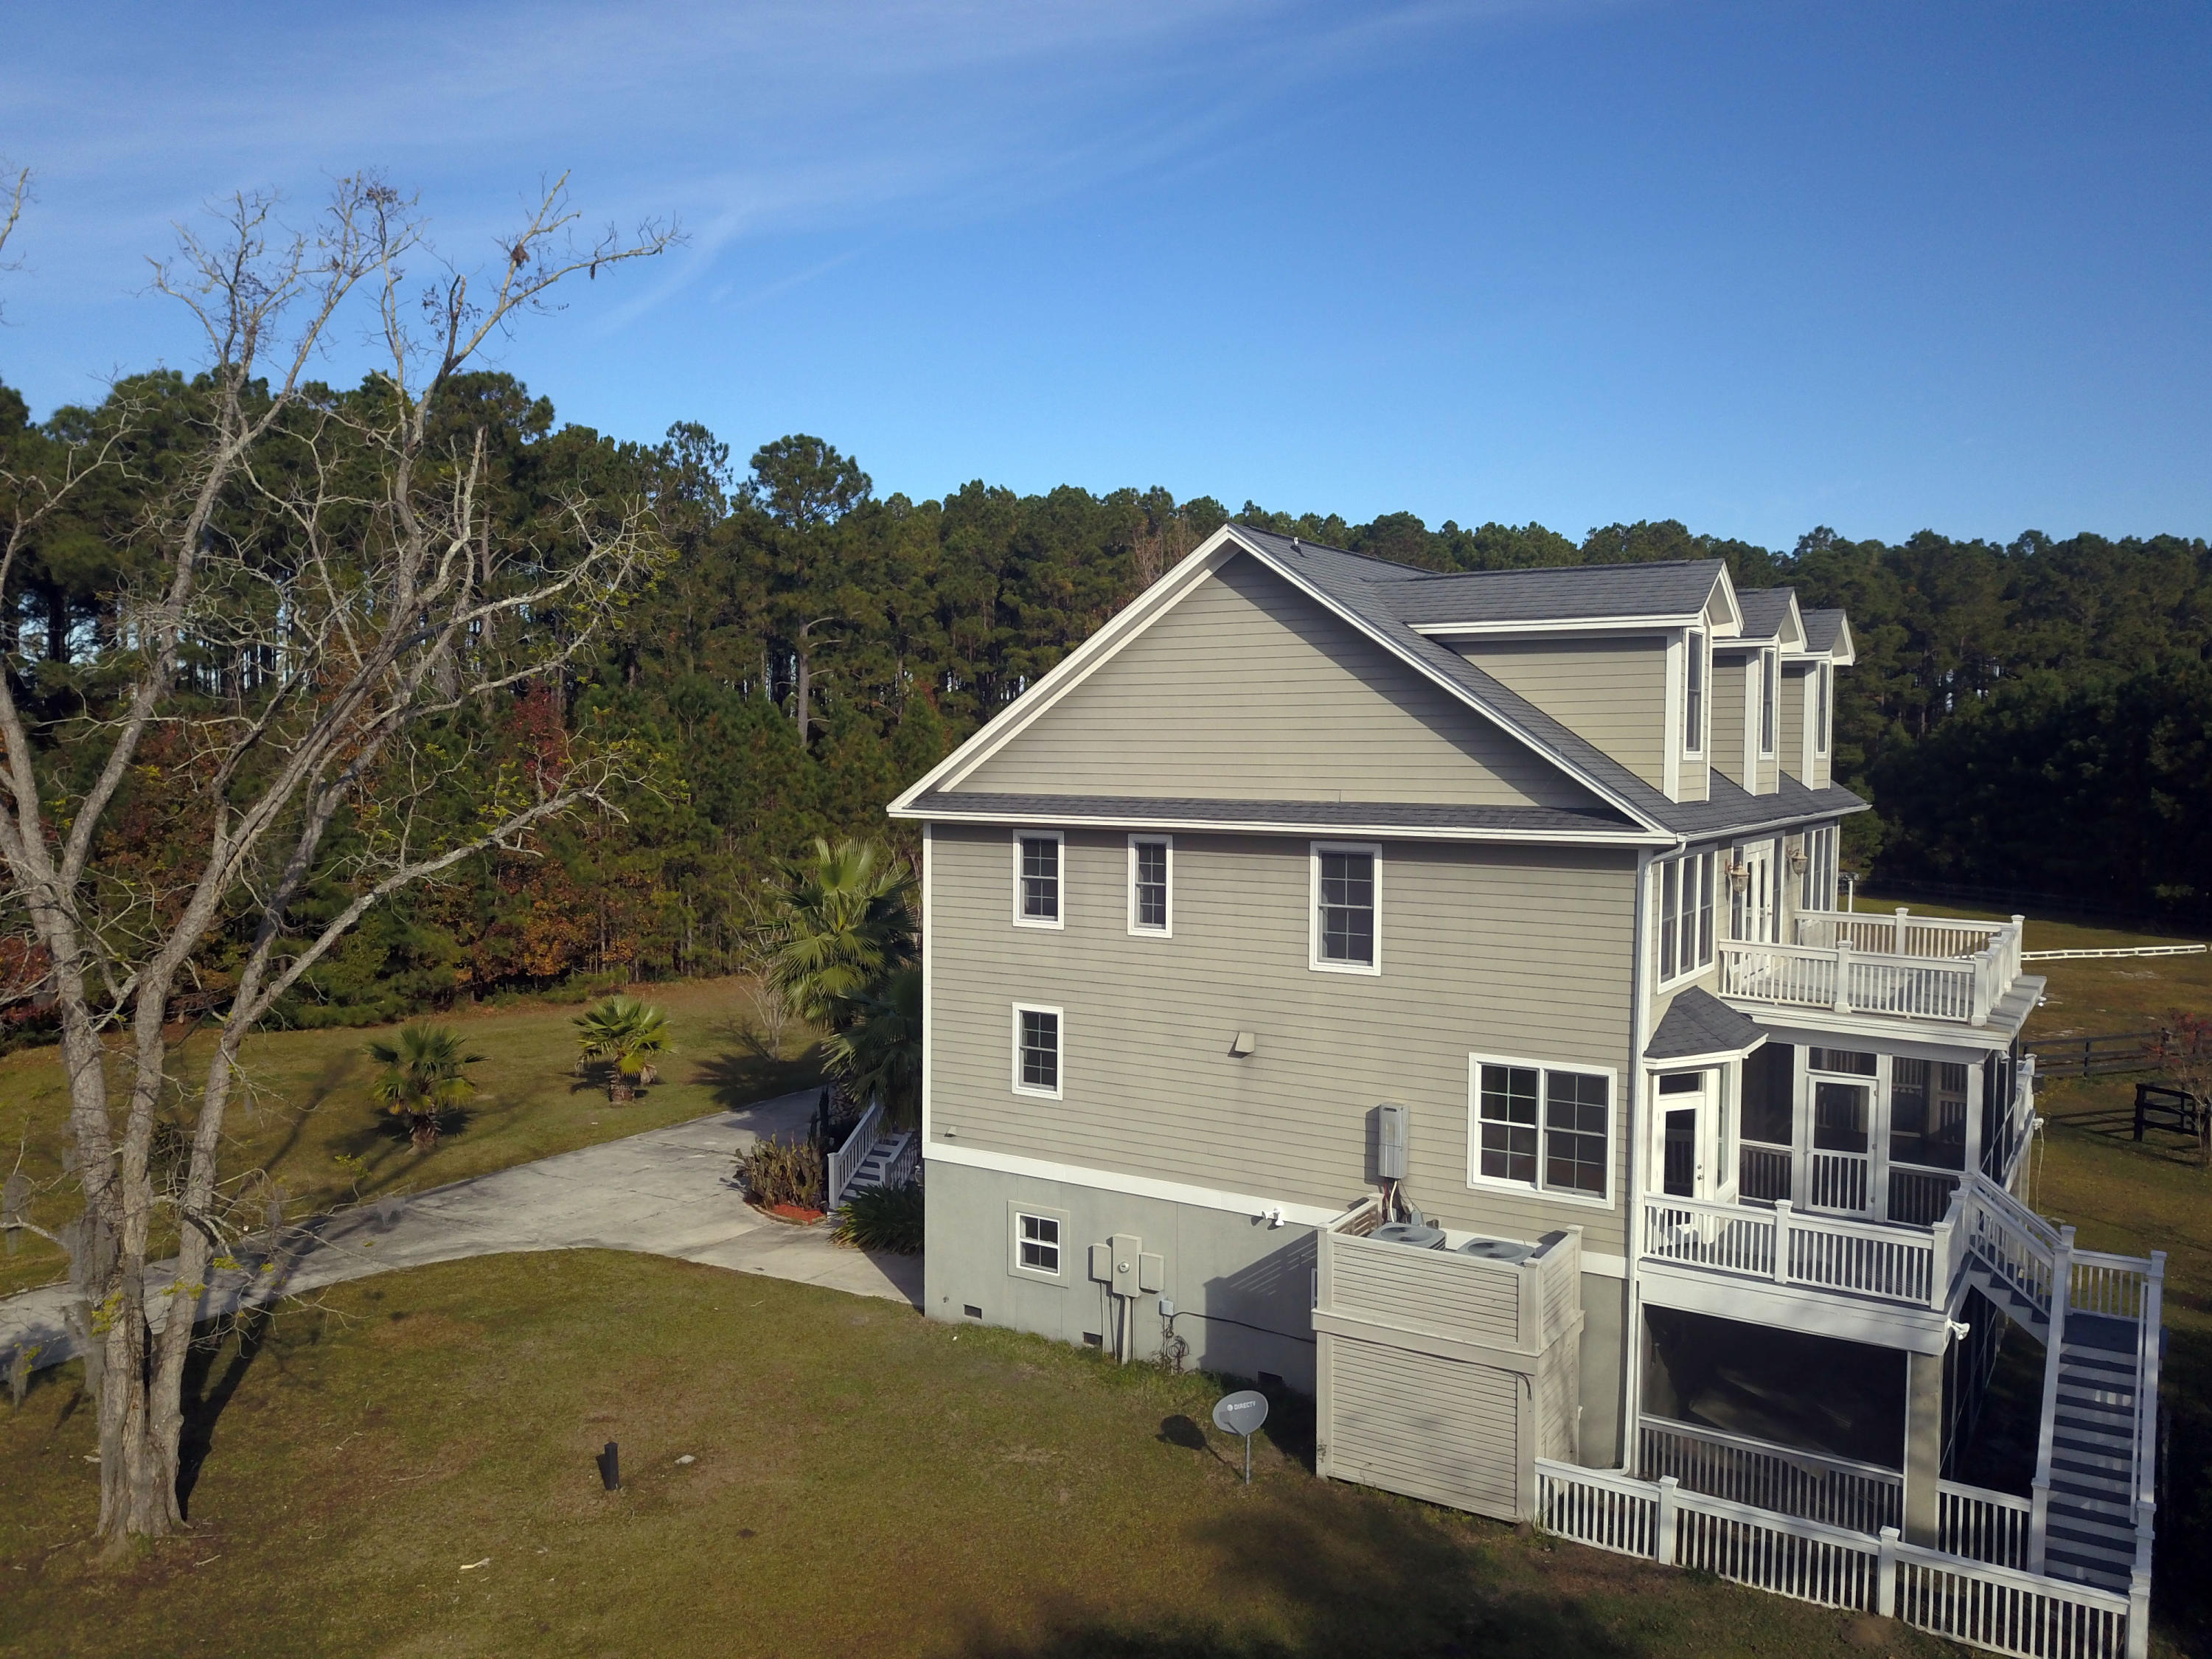 Polly Point Plantation Homes For Sale - 1389 Polly Point, Wadmalaw Island, SC - 76